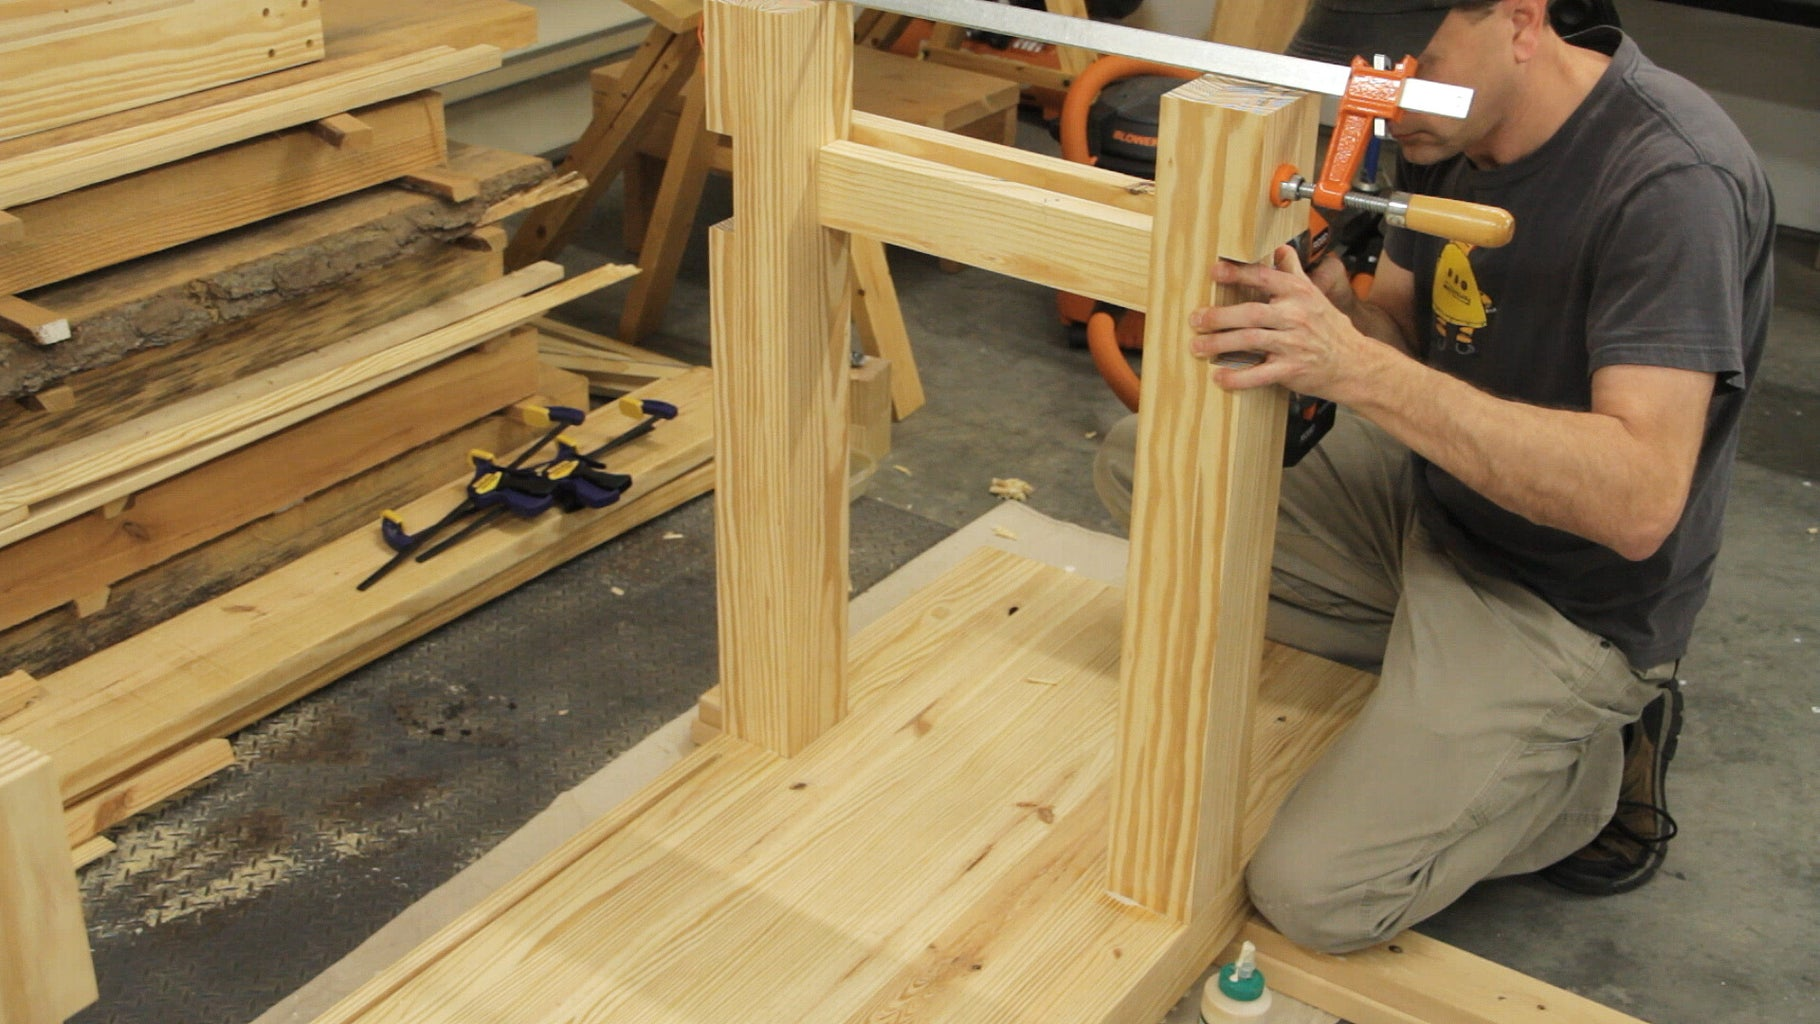 Assembling the Legs and Stretchers